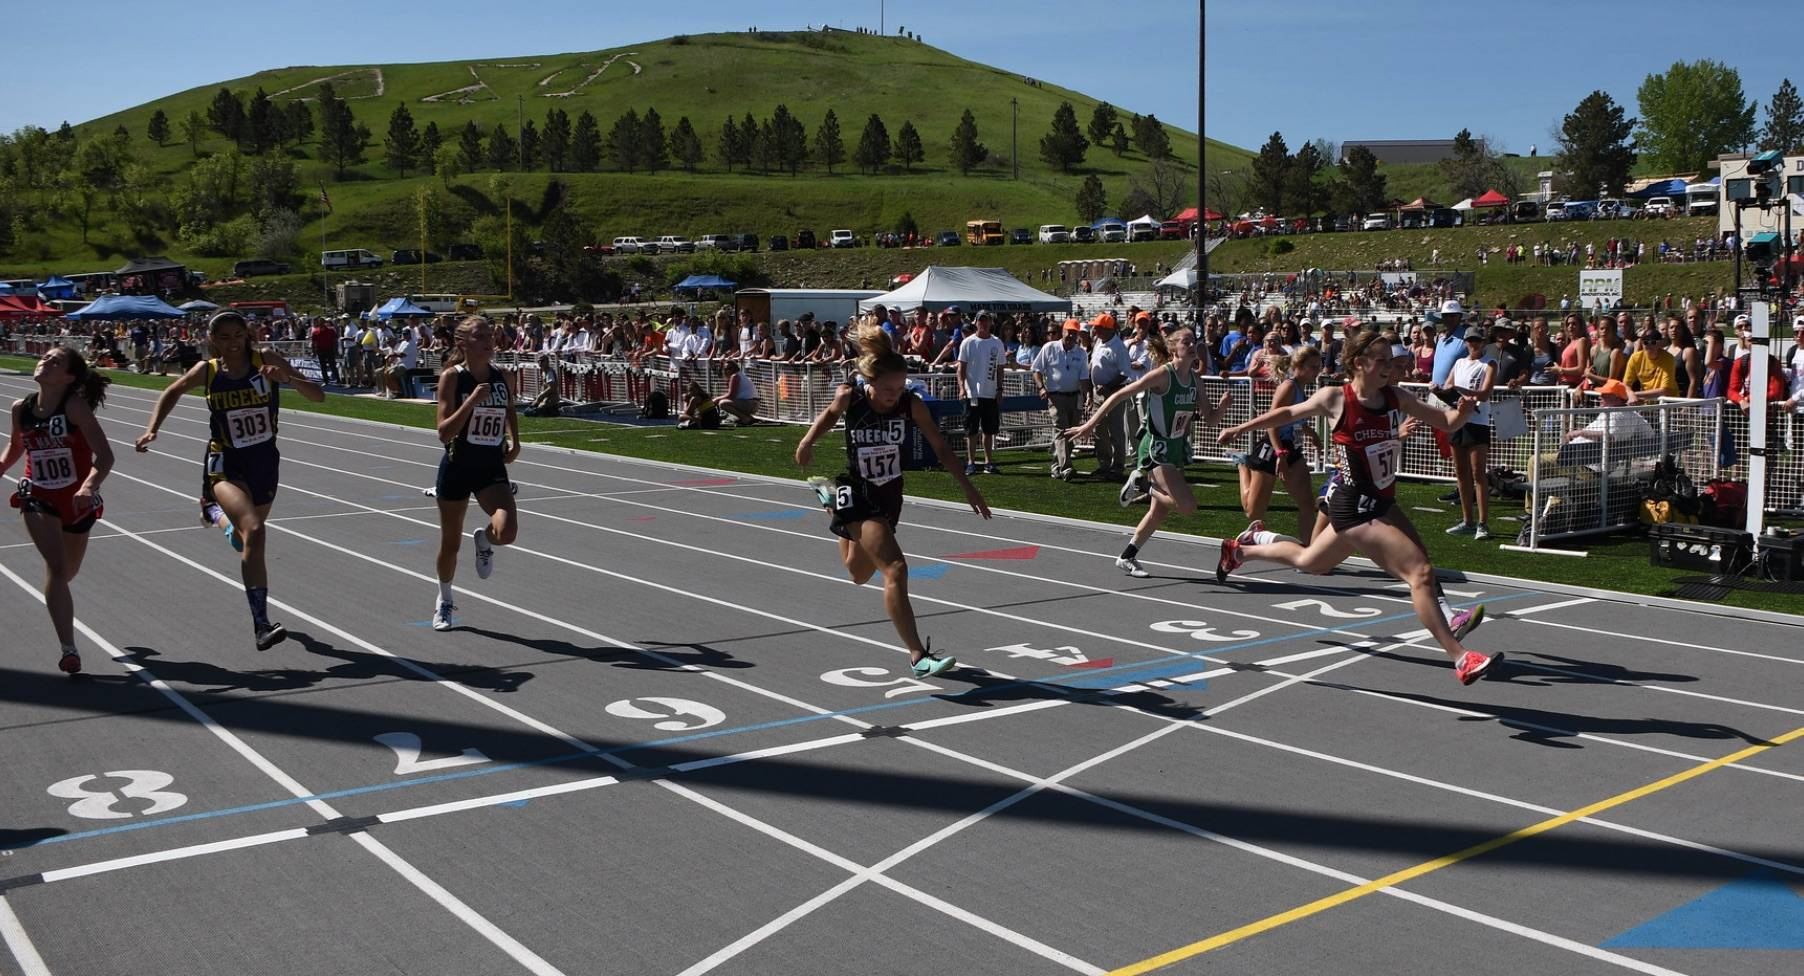 Track runners crossing the finish line